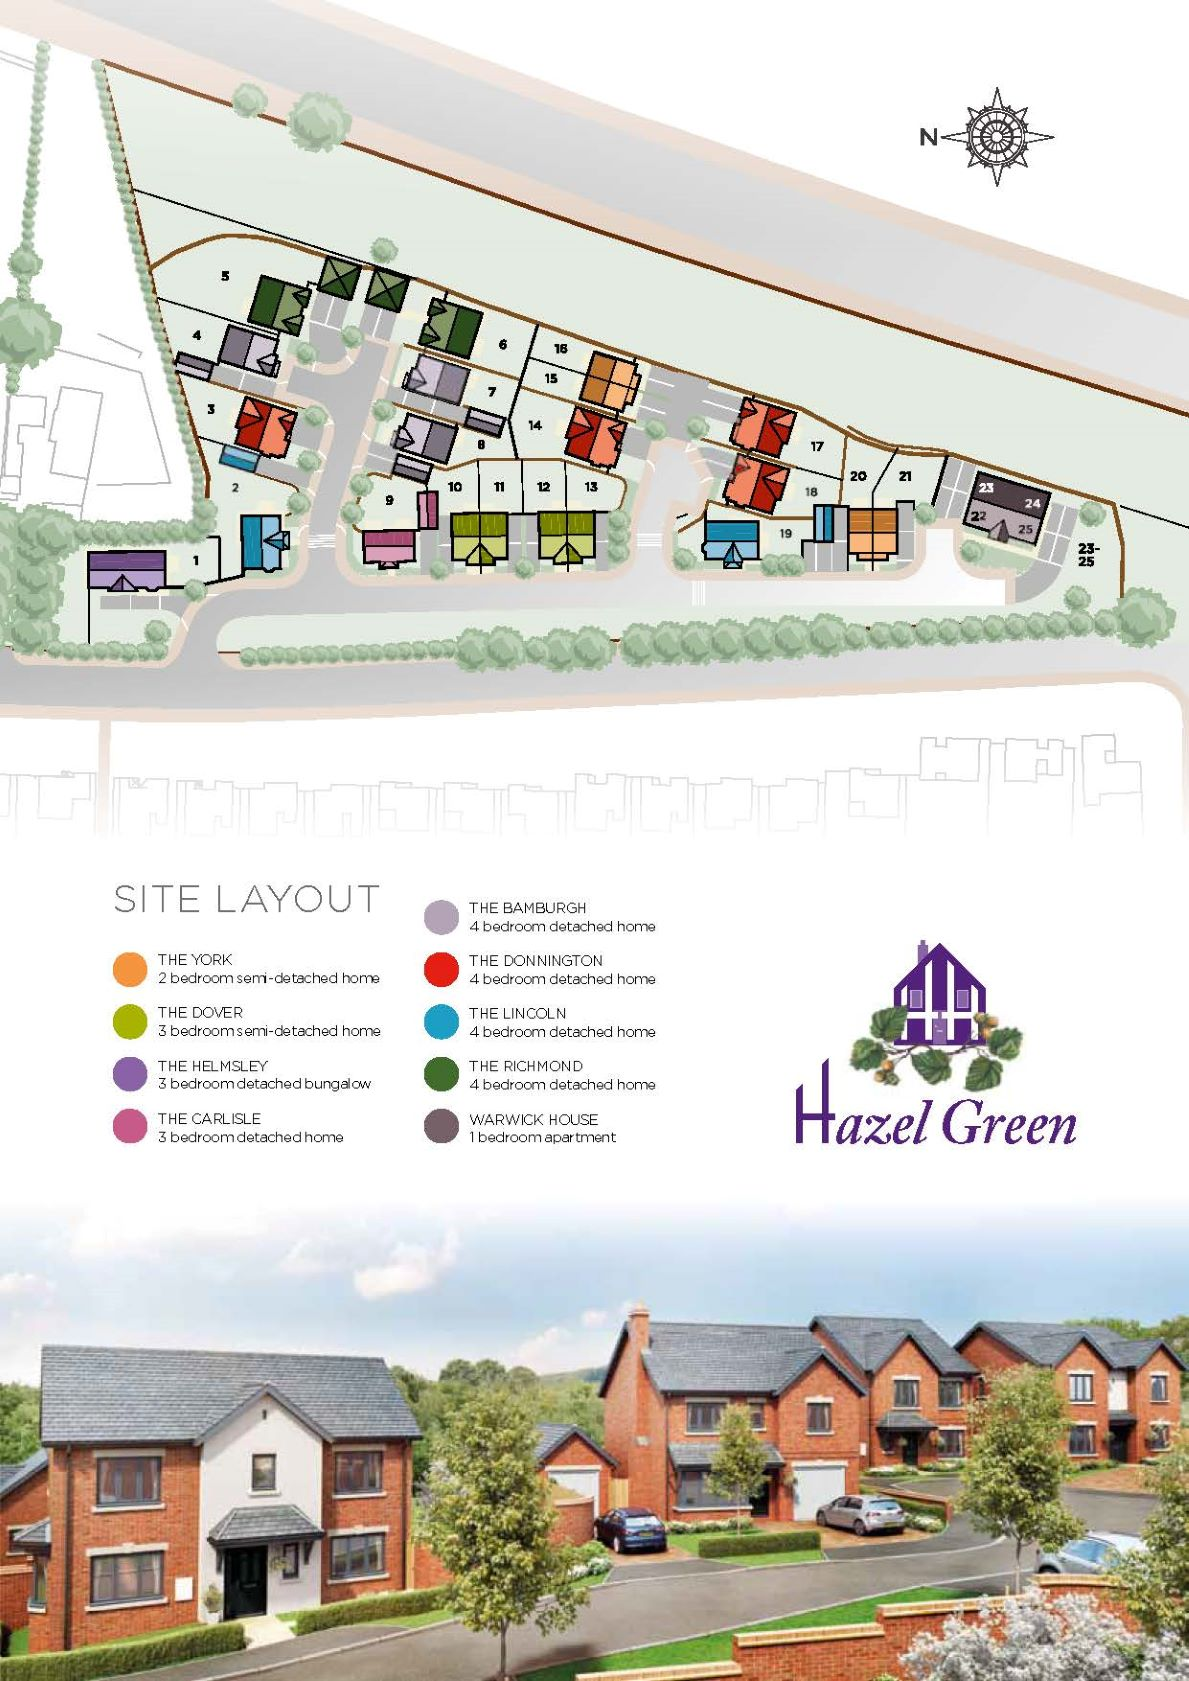 Hazel Green Site Map